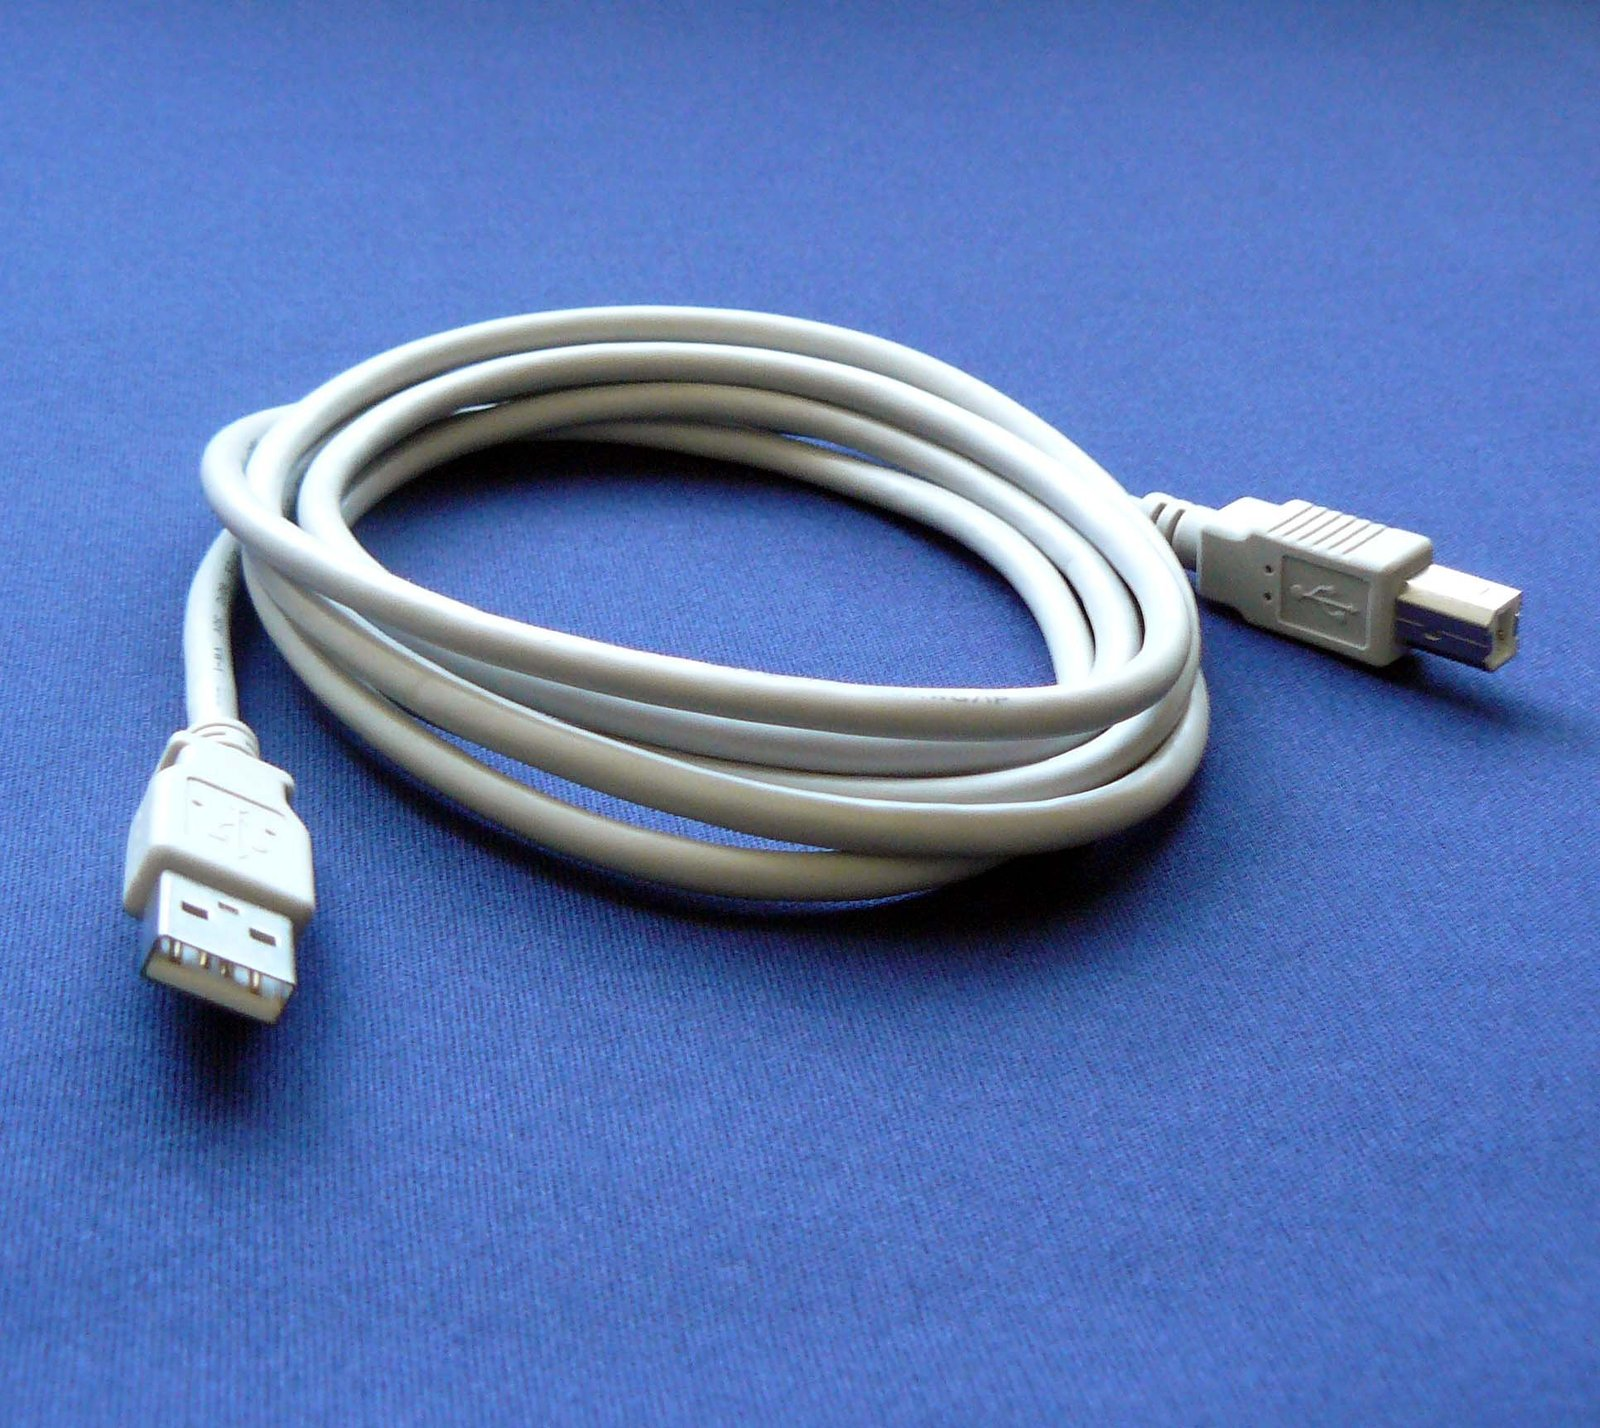 Primary image for Brother HL-5370DW Printer Compatible USB 2.0 Cable Cord for PC, Notebook, Mac...